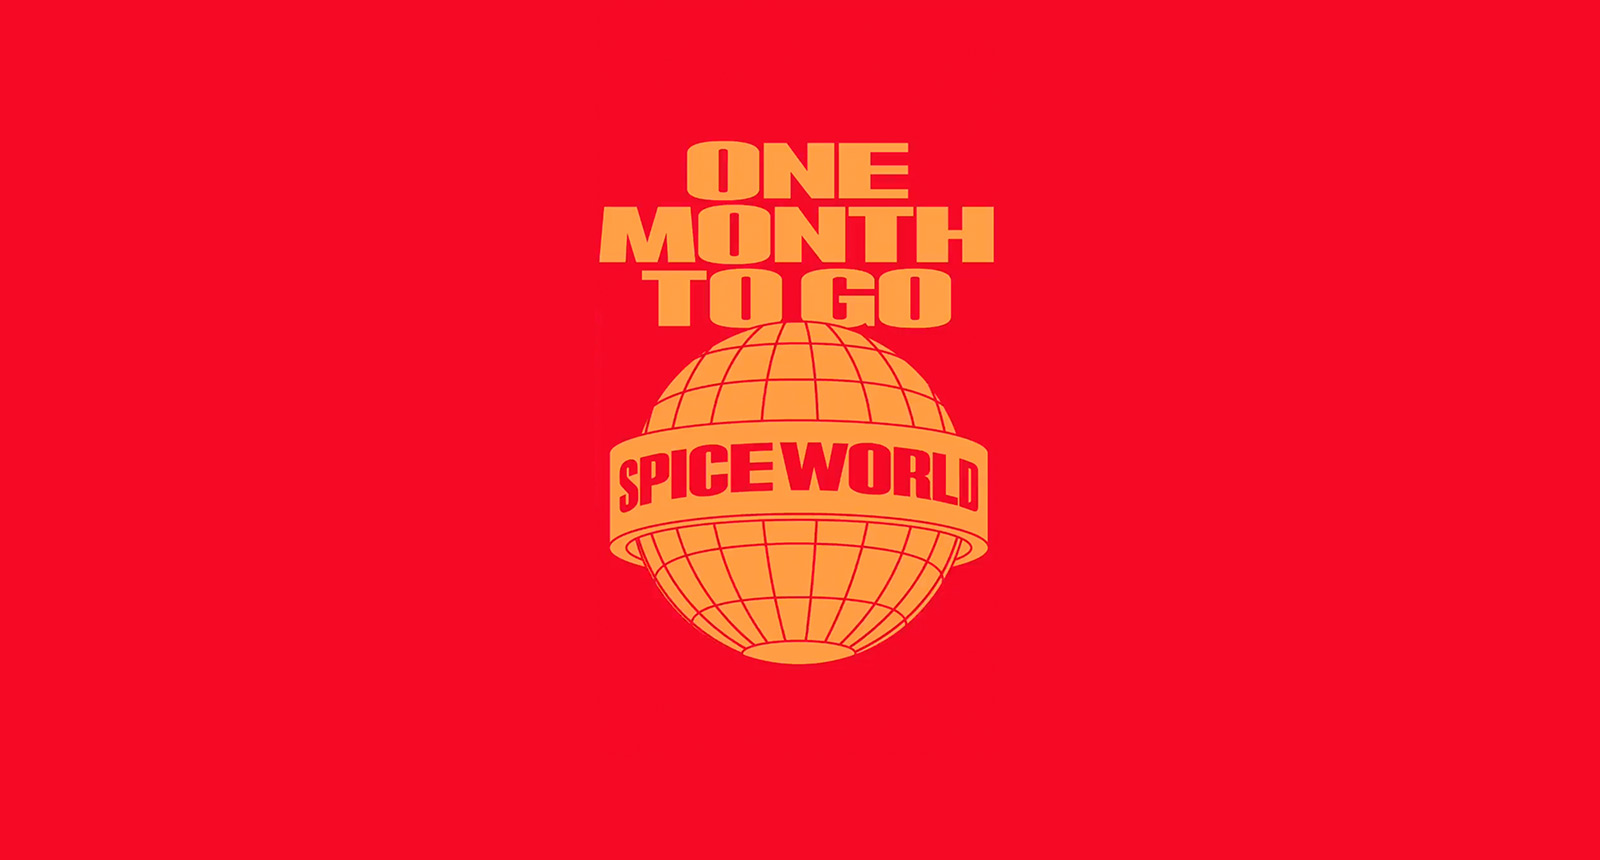 Spice World Tour 2019 - One month to go